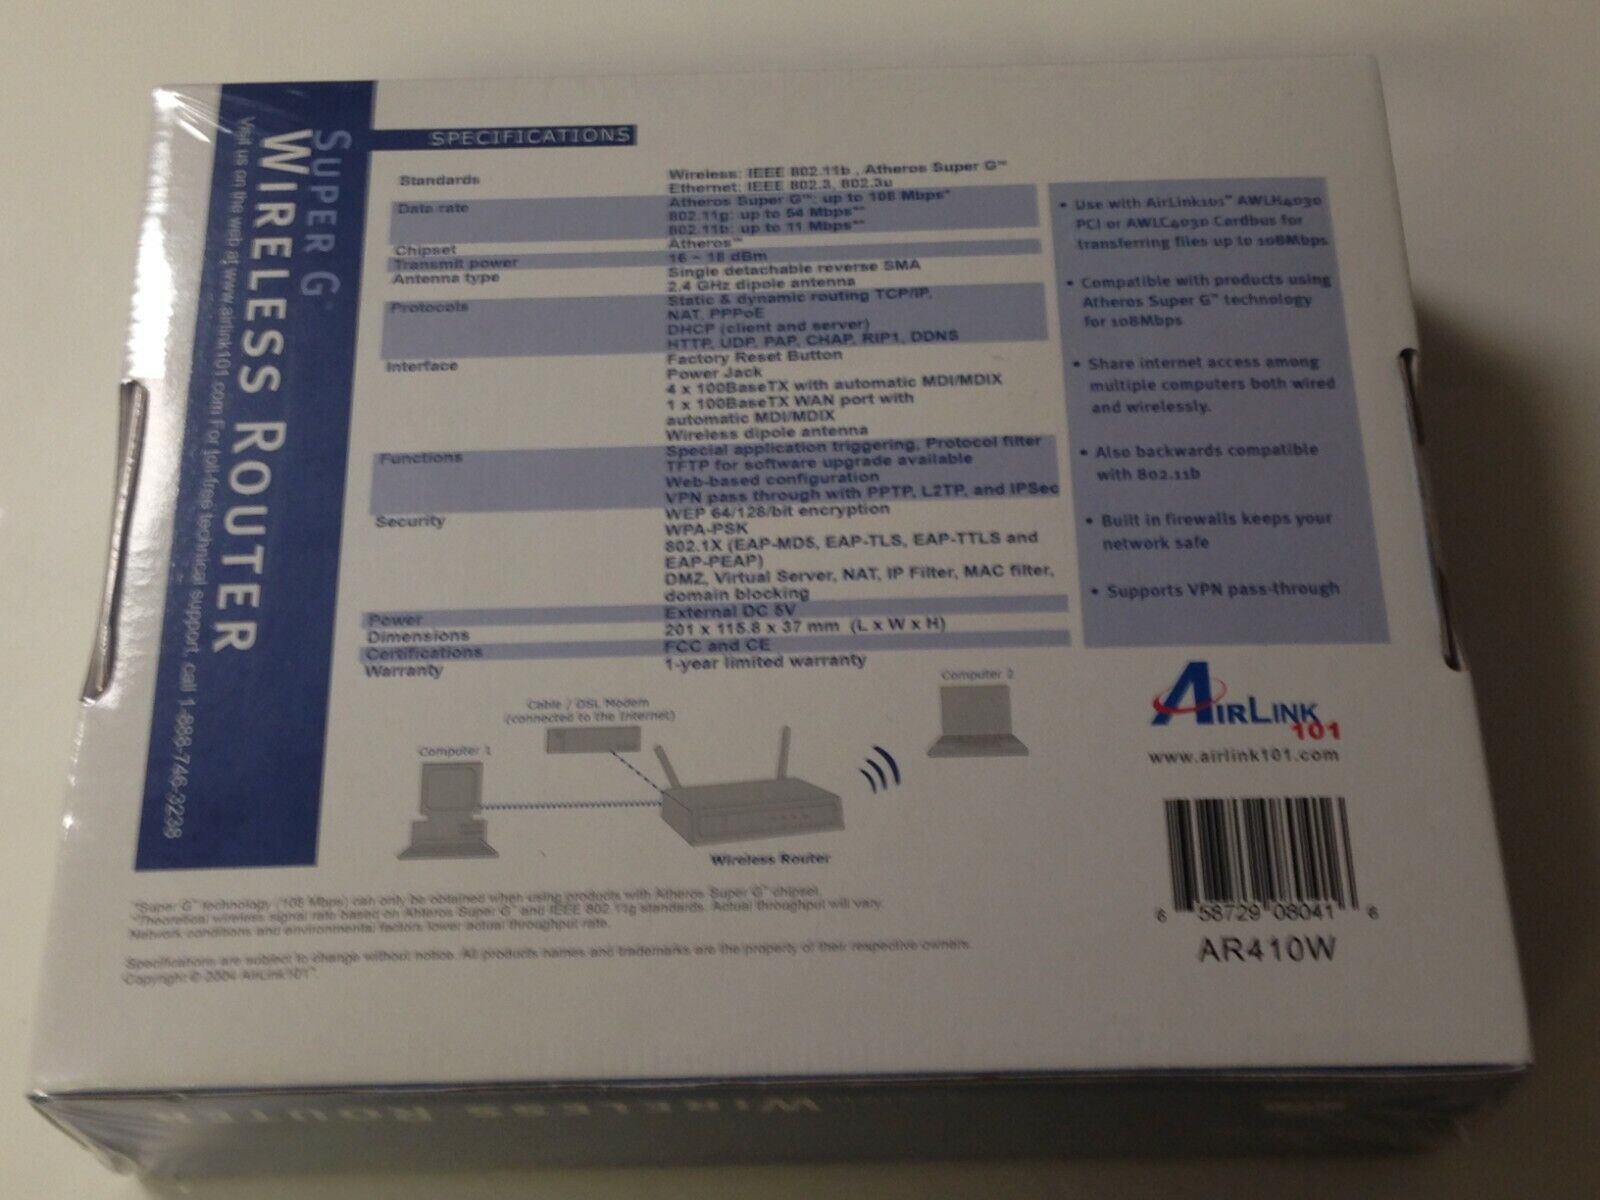 AIRLINK101 AR410W WINDOWS 8 X64 DRIVER DOWNLOAD